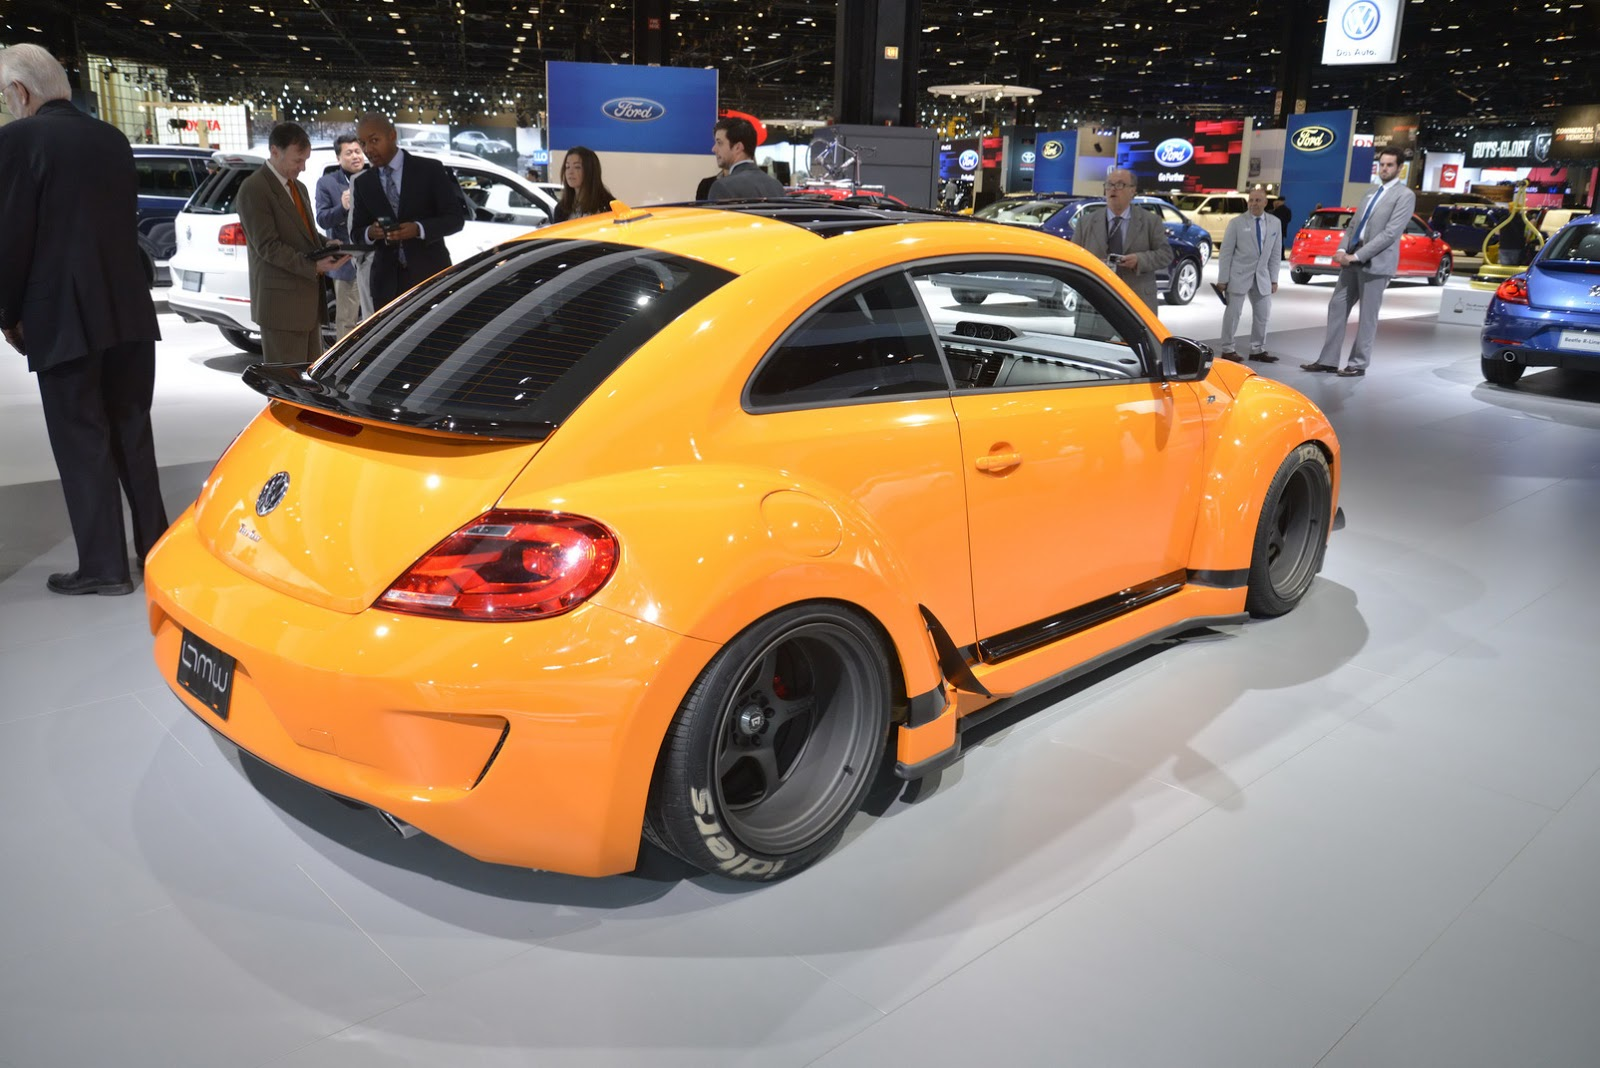 vw tanner foust racing eneos rwb beetle brings some color to chicago show carscoops. Black Bedroom Furniture Sets. Home Design Ideas